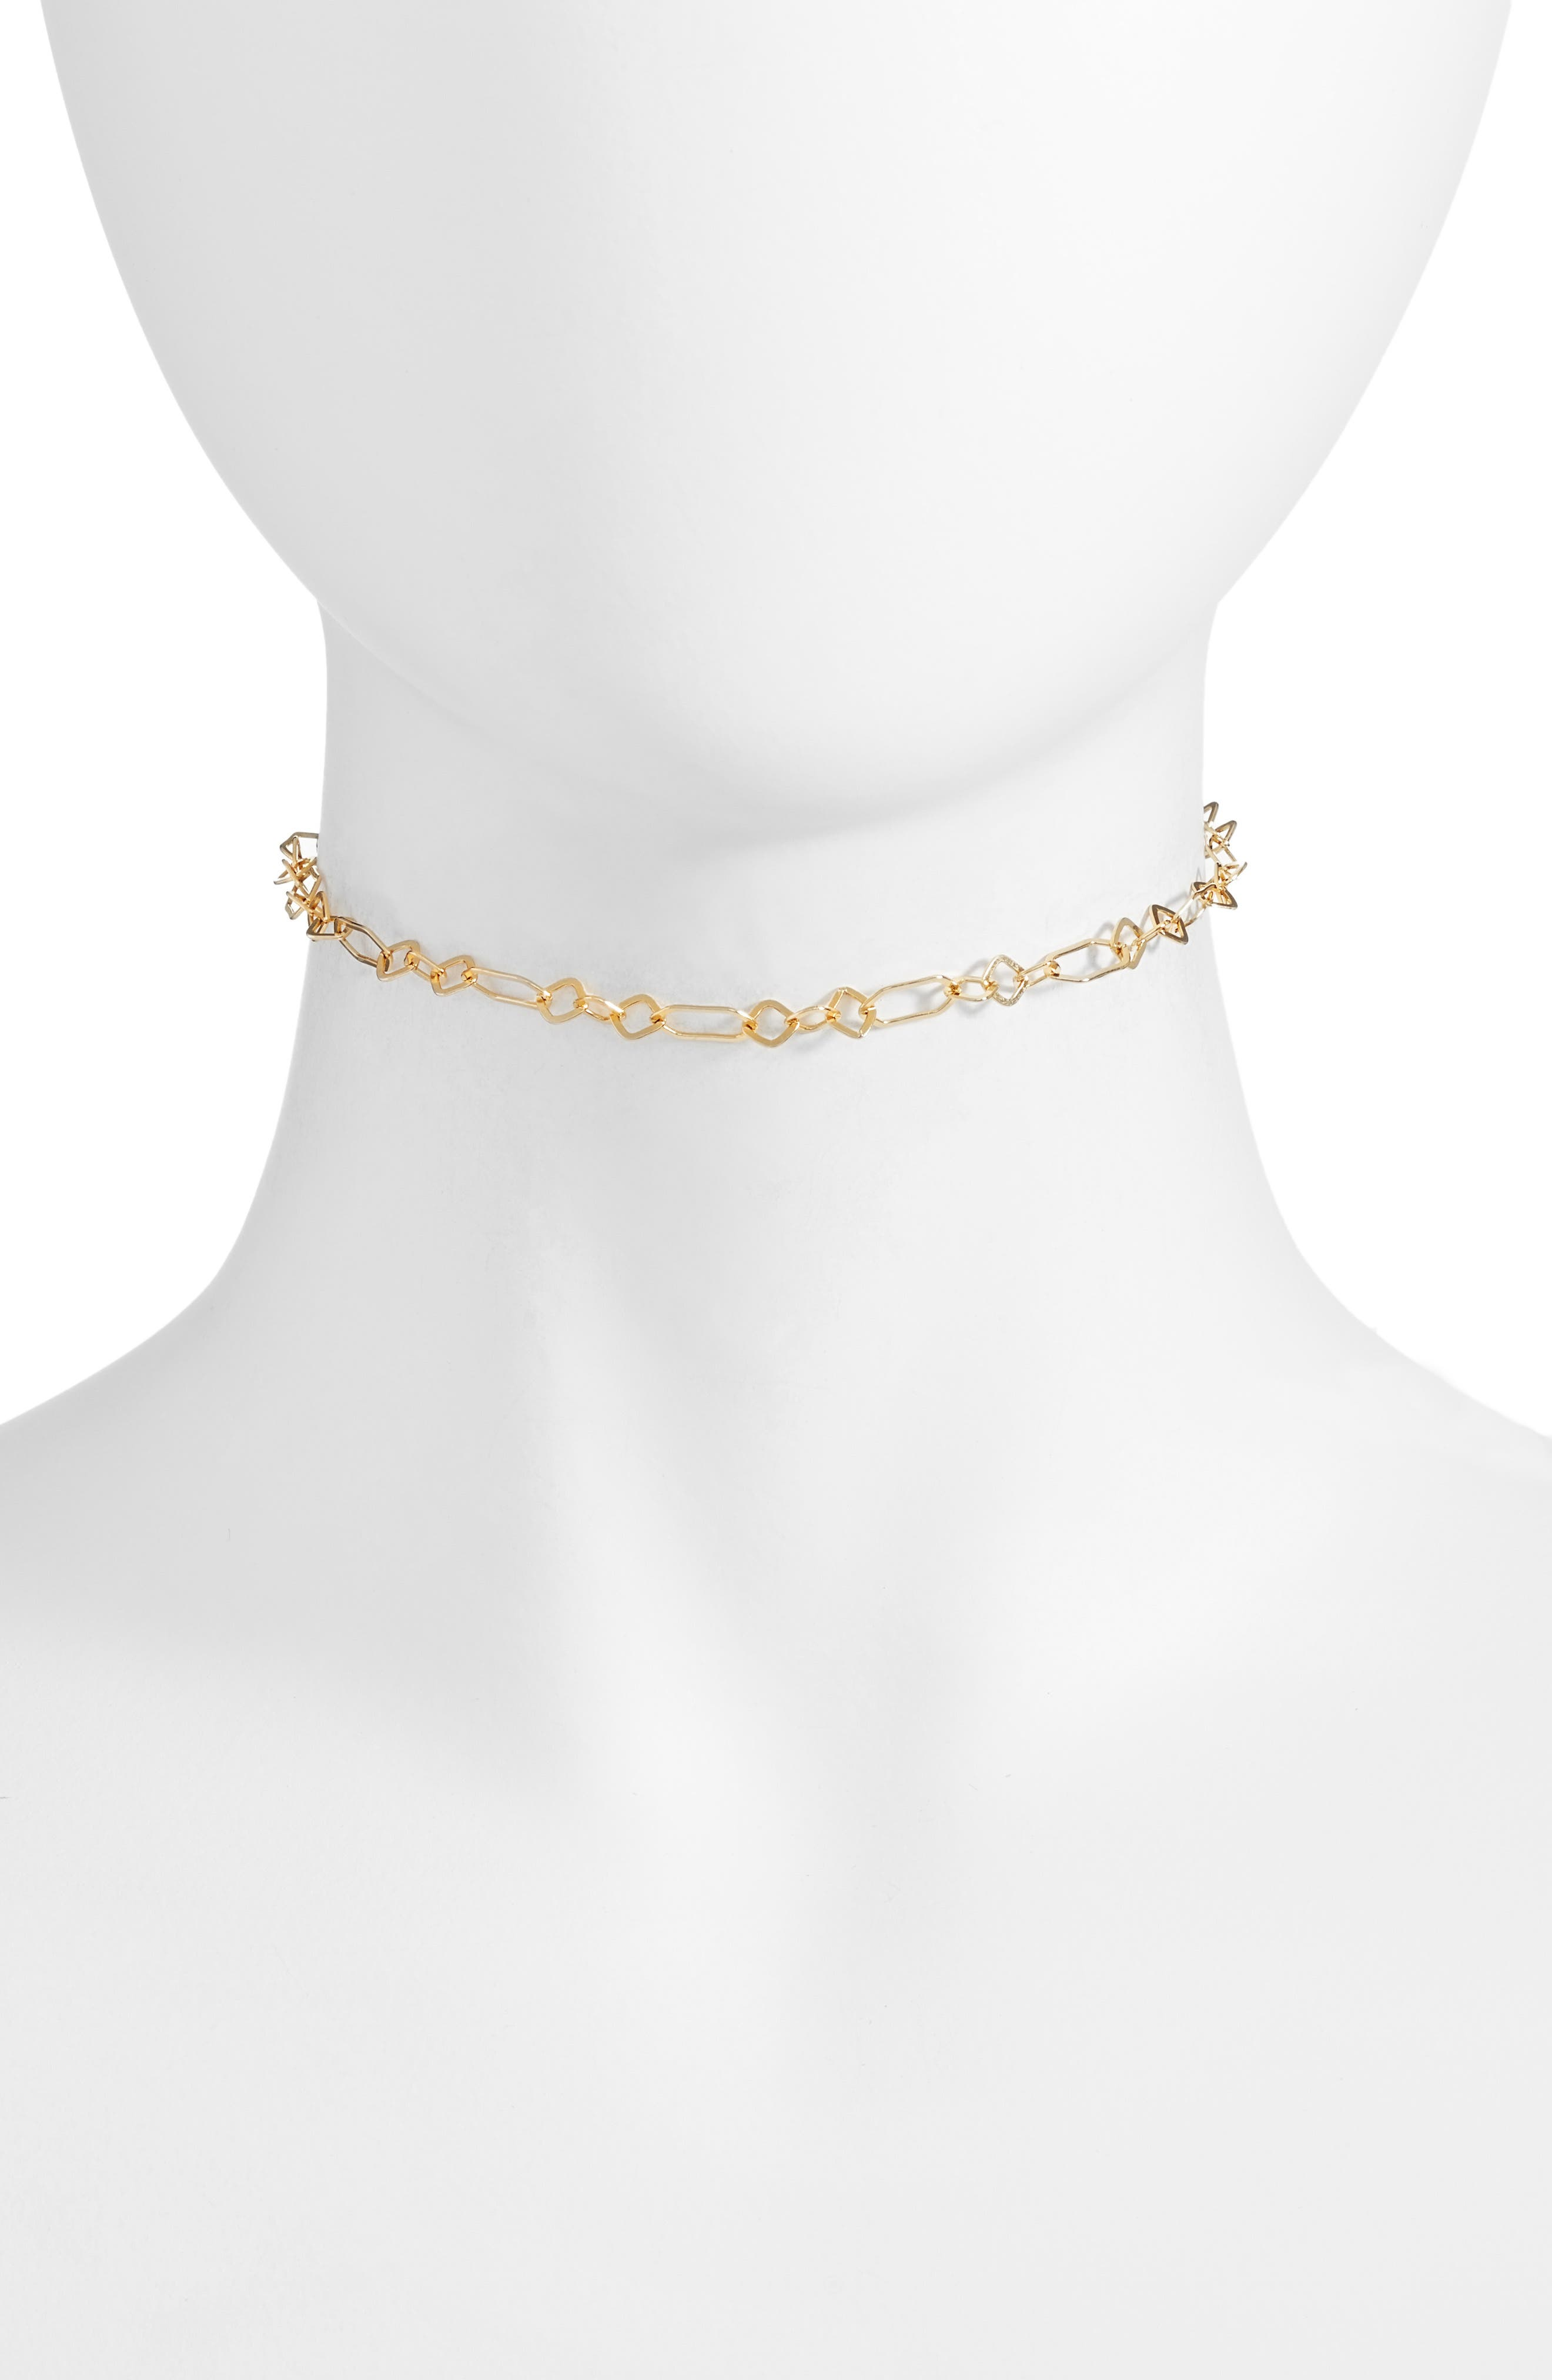 Oval Link Choker Necklace,                         Main,                         color, Gold